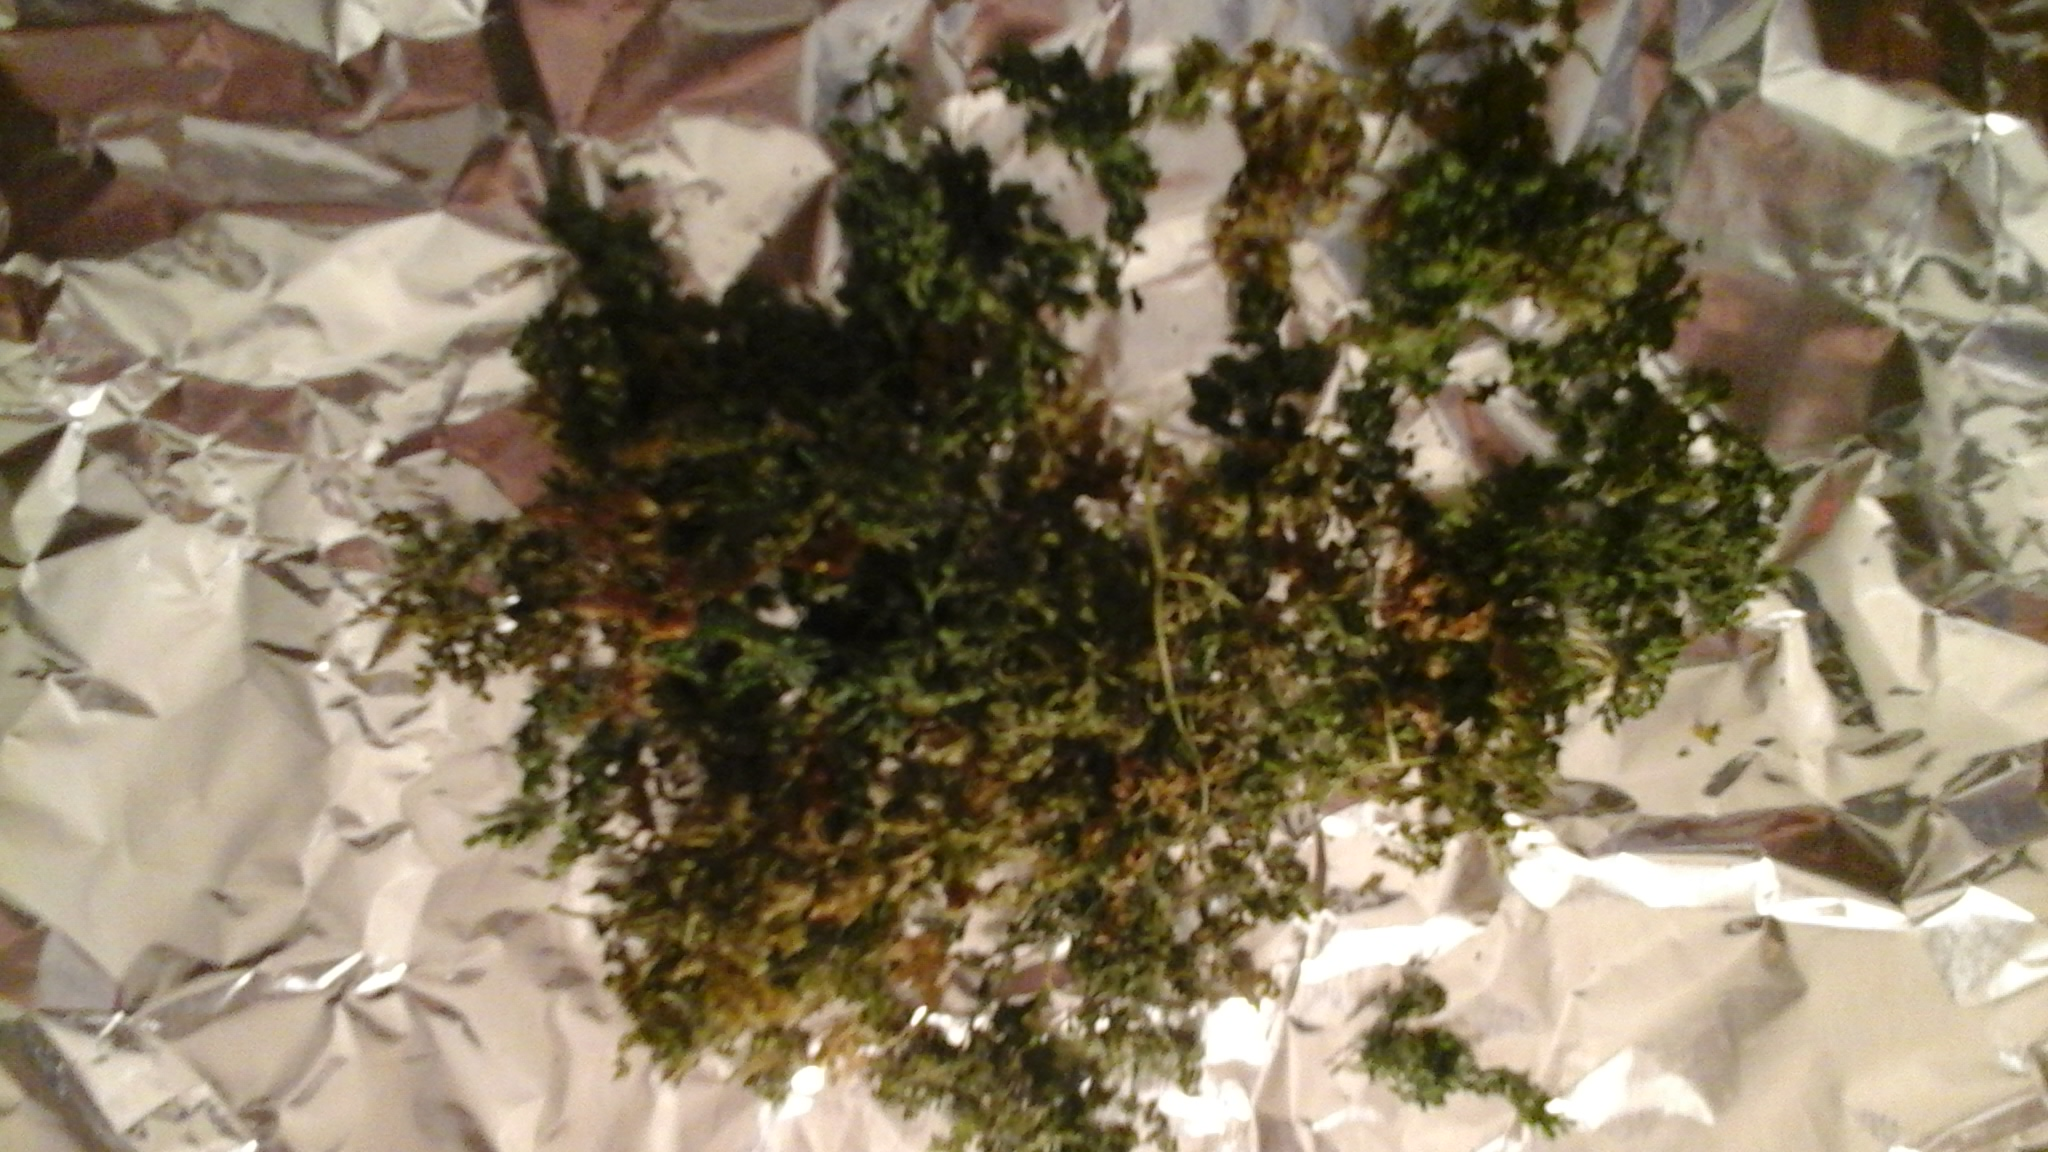 Picture of Day 1- Preparing the Chervil Infused Rum